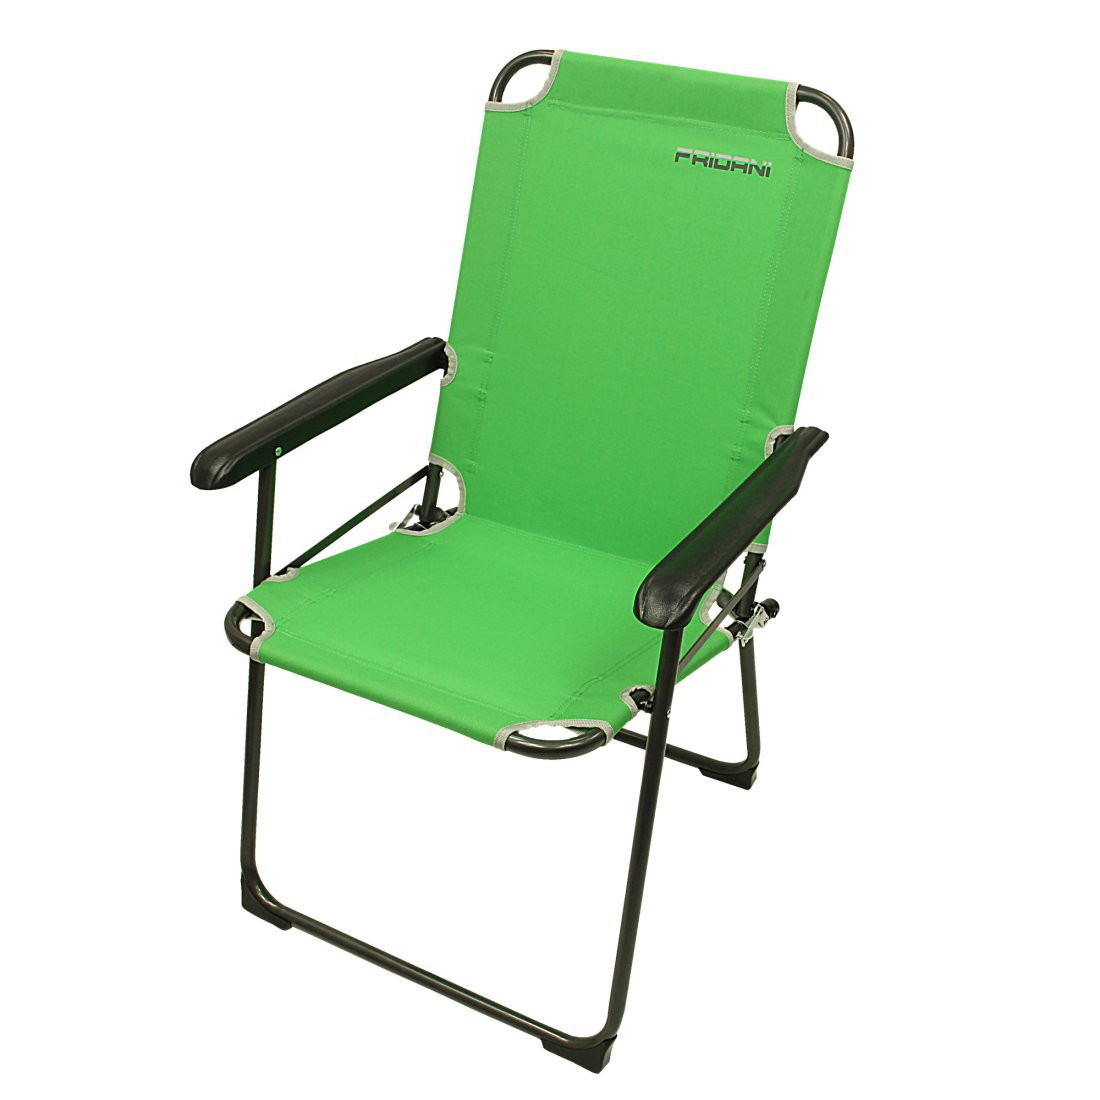 Fridani Gcg 920 Camping Chair With Arm Rests Compact